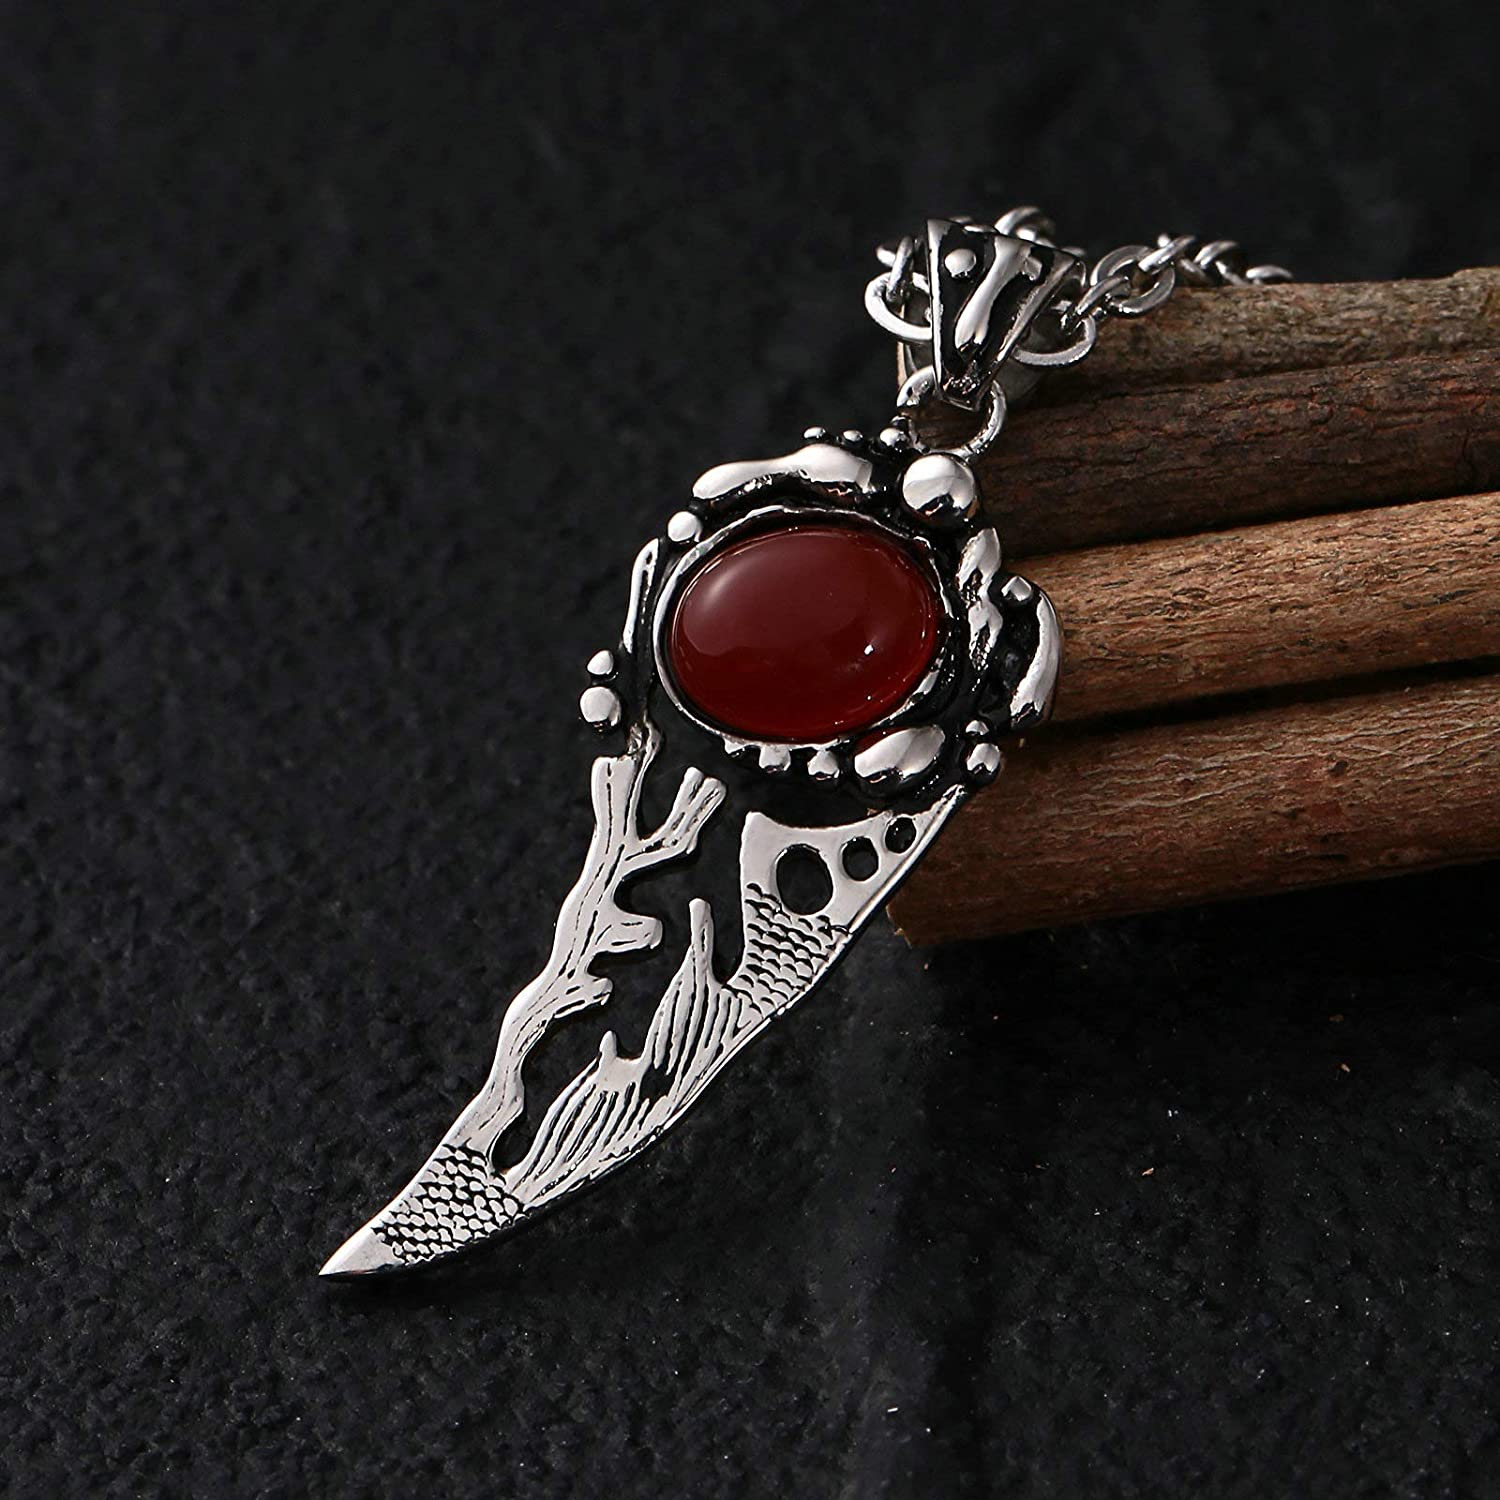 Bishilin Pendant for Men Stainless Steel Crescent with Rhinestone Red Pendant Necklace Men Hip Hop